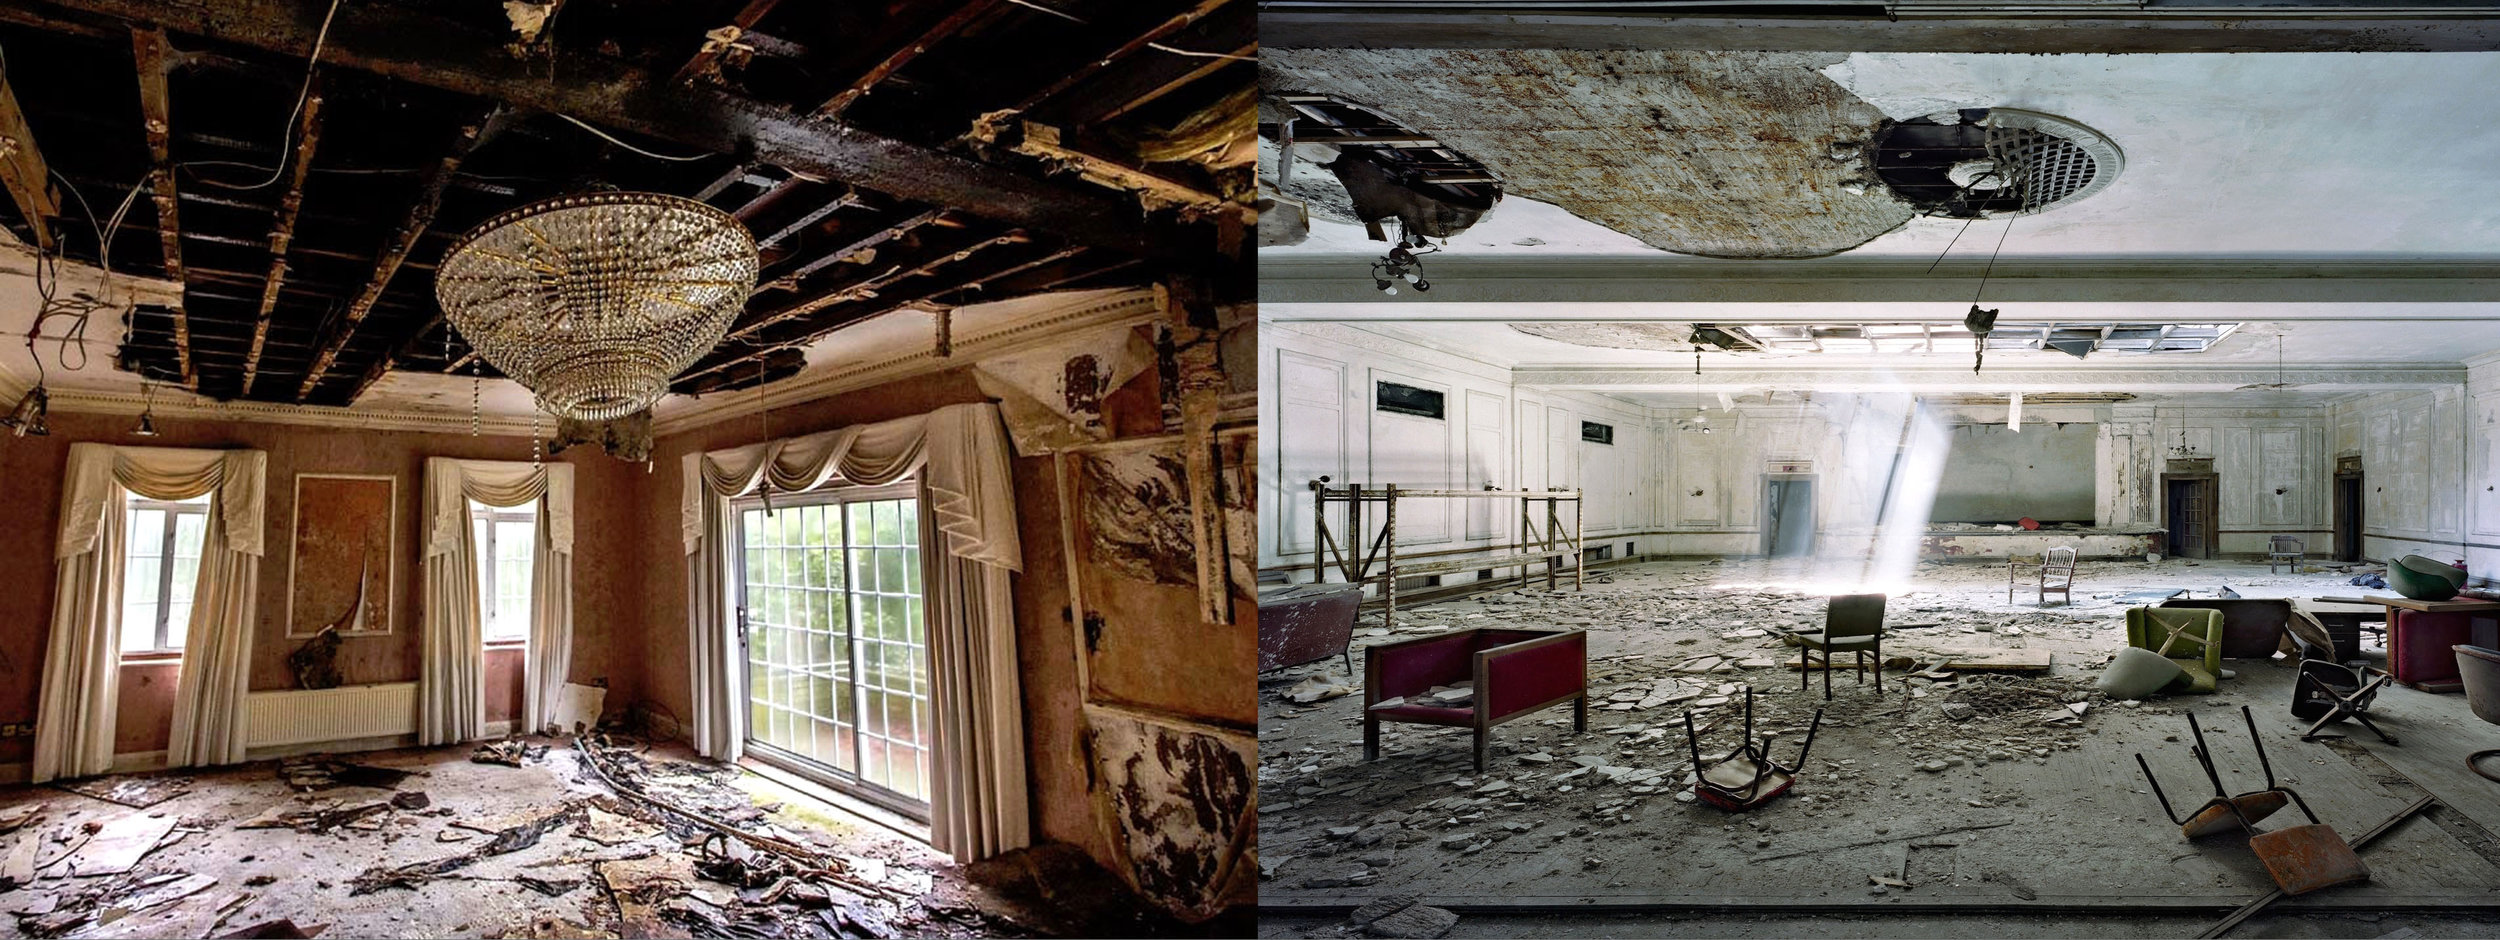 Figure 5: Ghost mansion in London (left) and abandoned hotel in Detroit (right). (Photos by The Guardian and Marchand & Meffre).